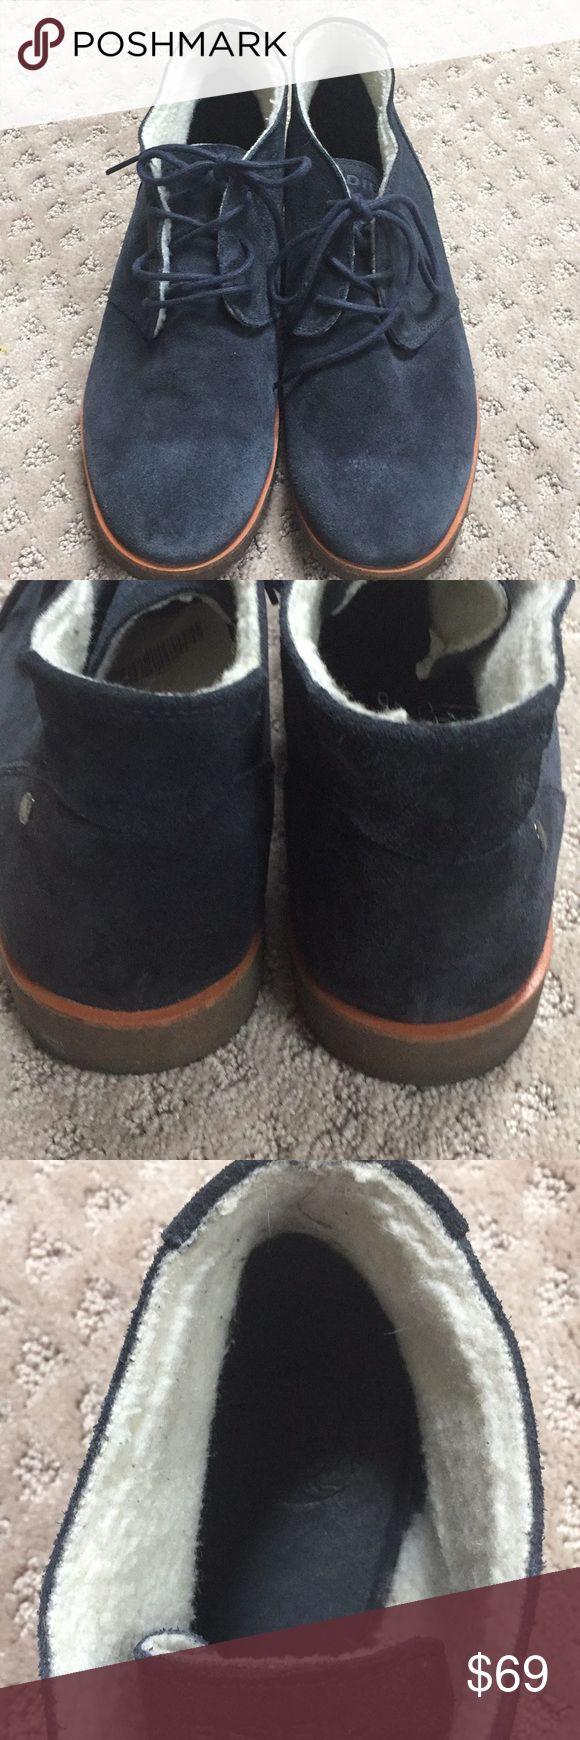 Diesel Chukka Navy blue suede with fleece lining. Have plenty of life left to enjoy. Size 12 Diesel Black Gold Shoes Chukka Boots